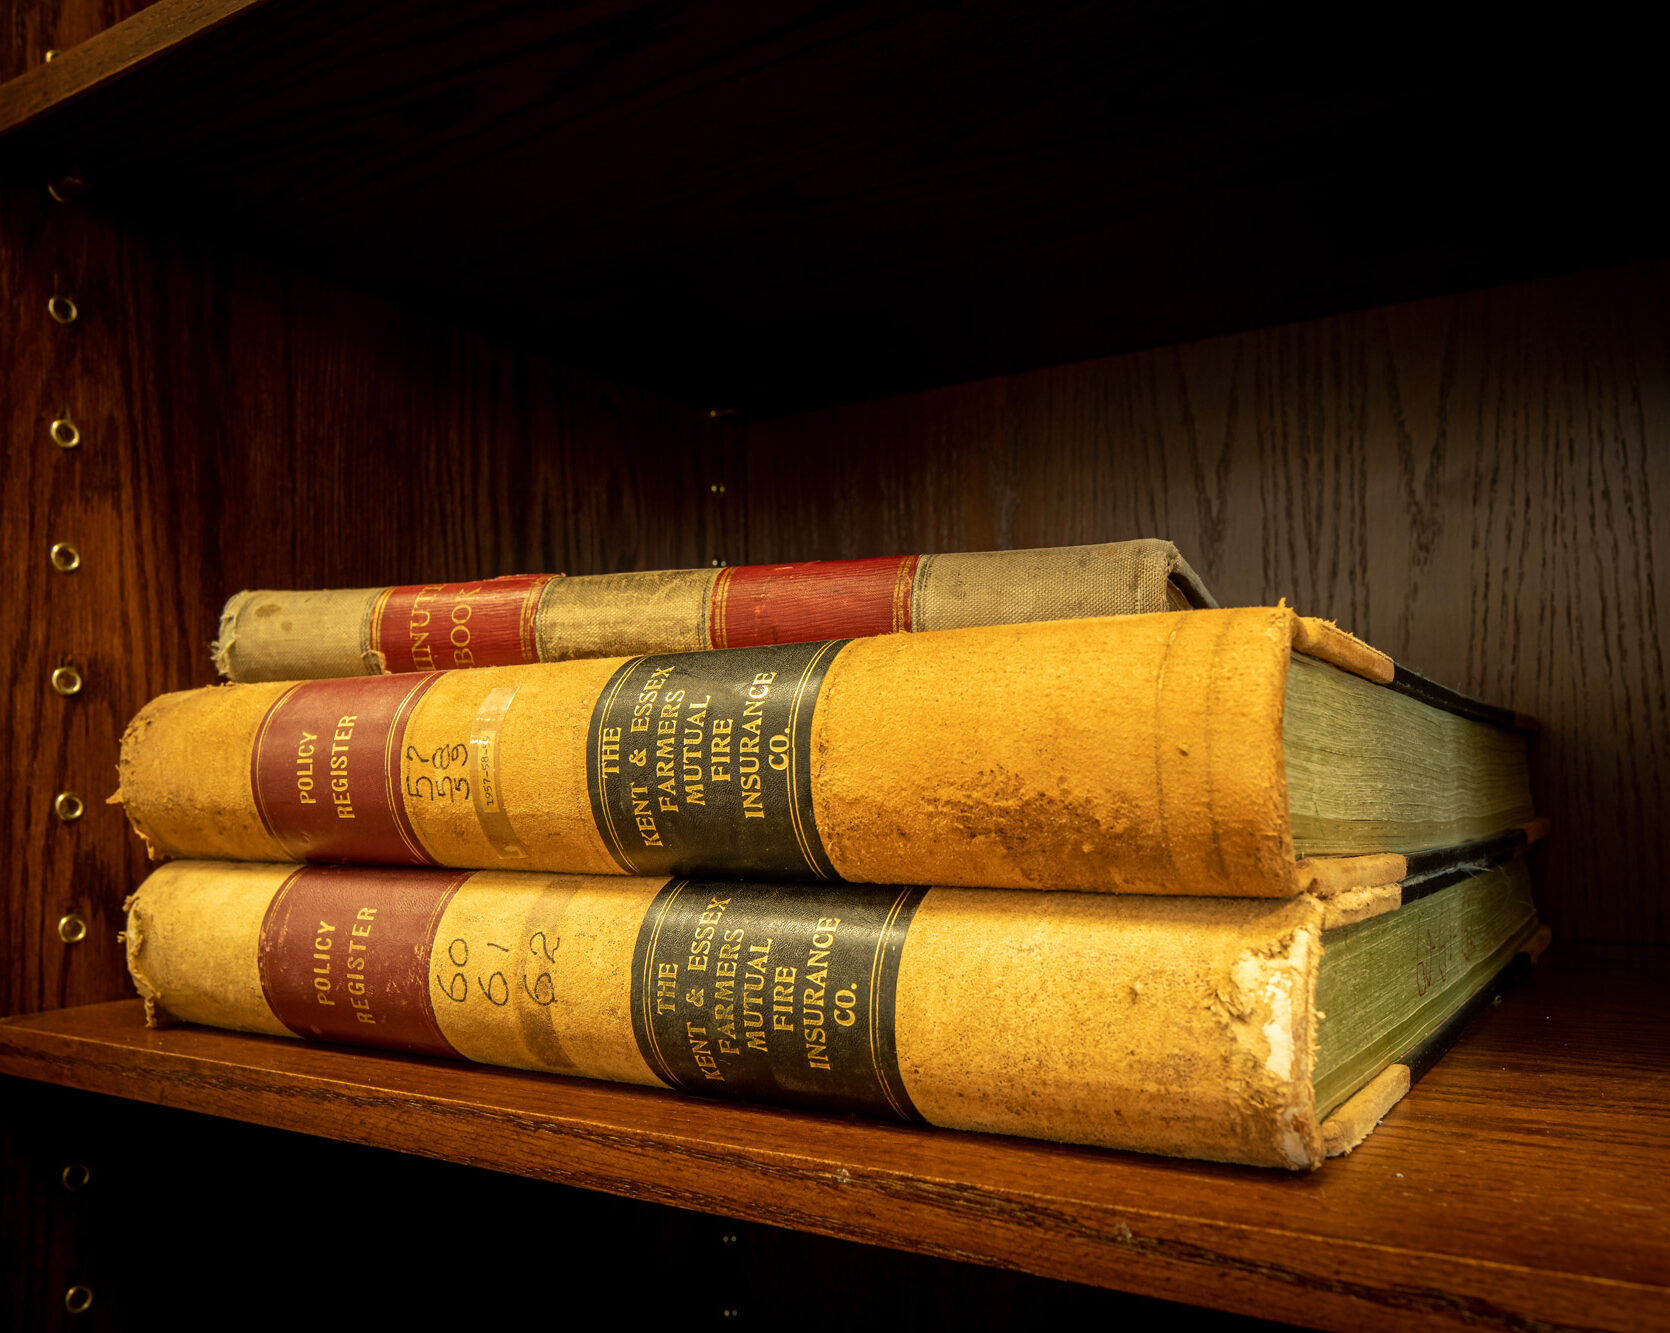 Three really old books stacked on top of each other